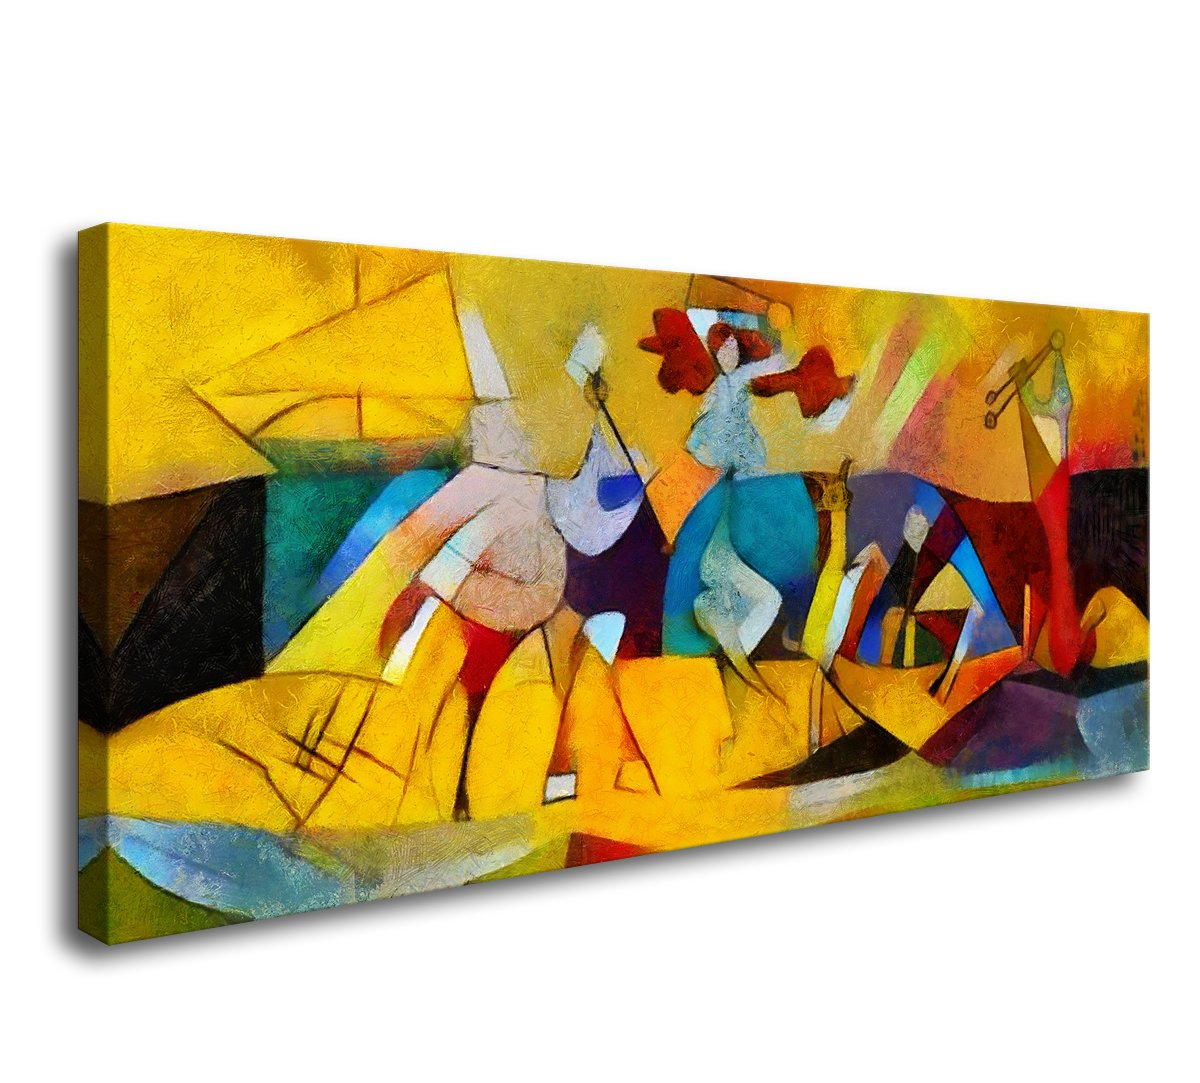 DZL Art A71450 Framed Wall Abstract Paintings Canvas Print Painting ...